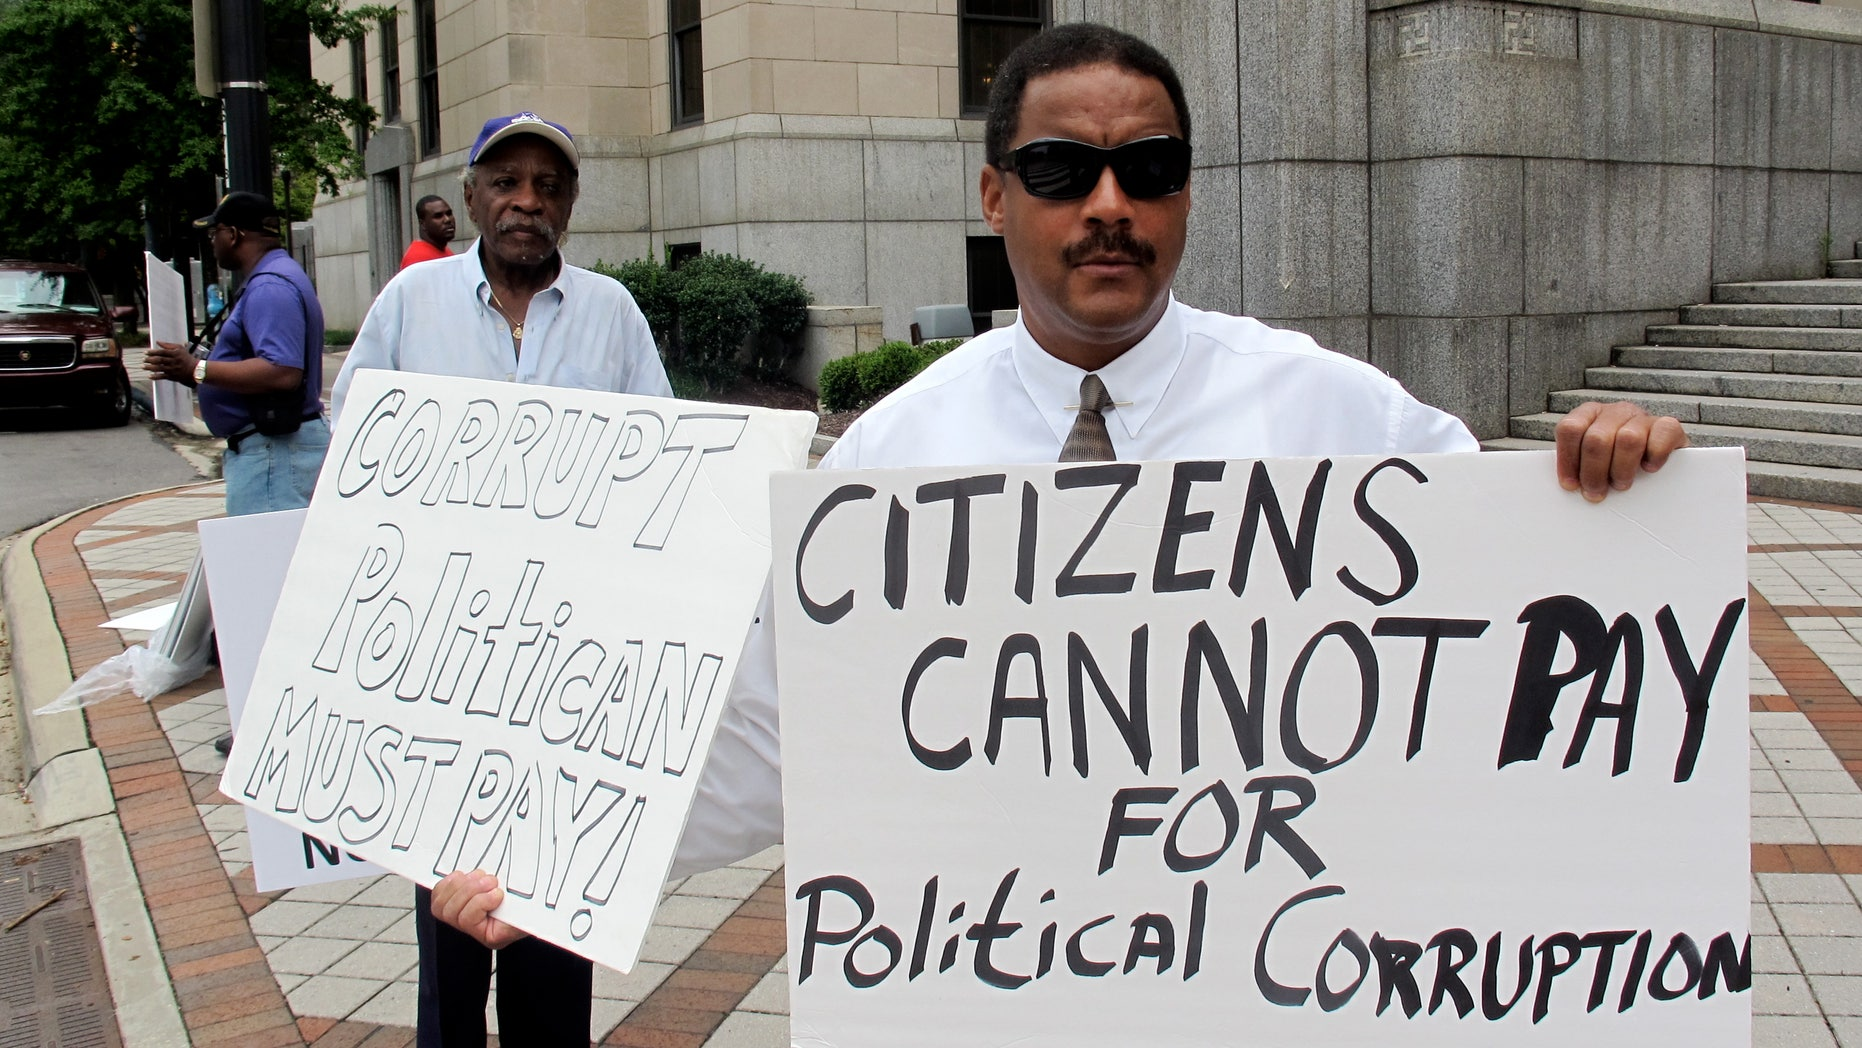 August 4 Protestors outside Jefferson County courthouse in Birmingham, Alabama.